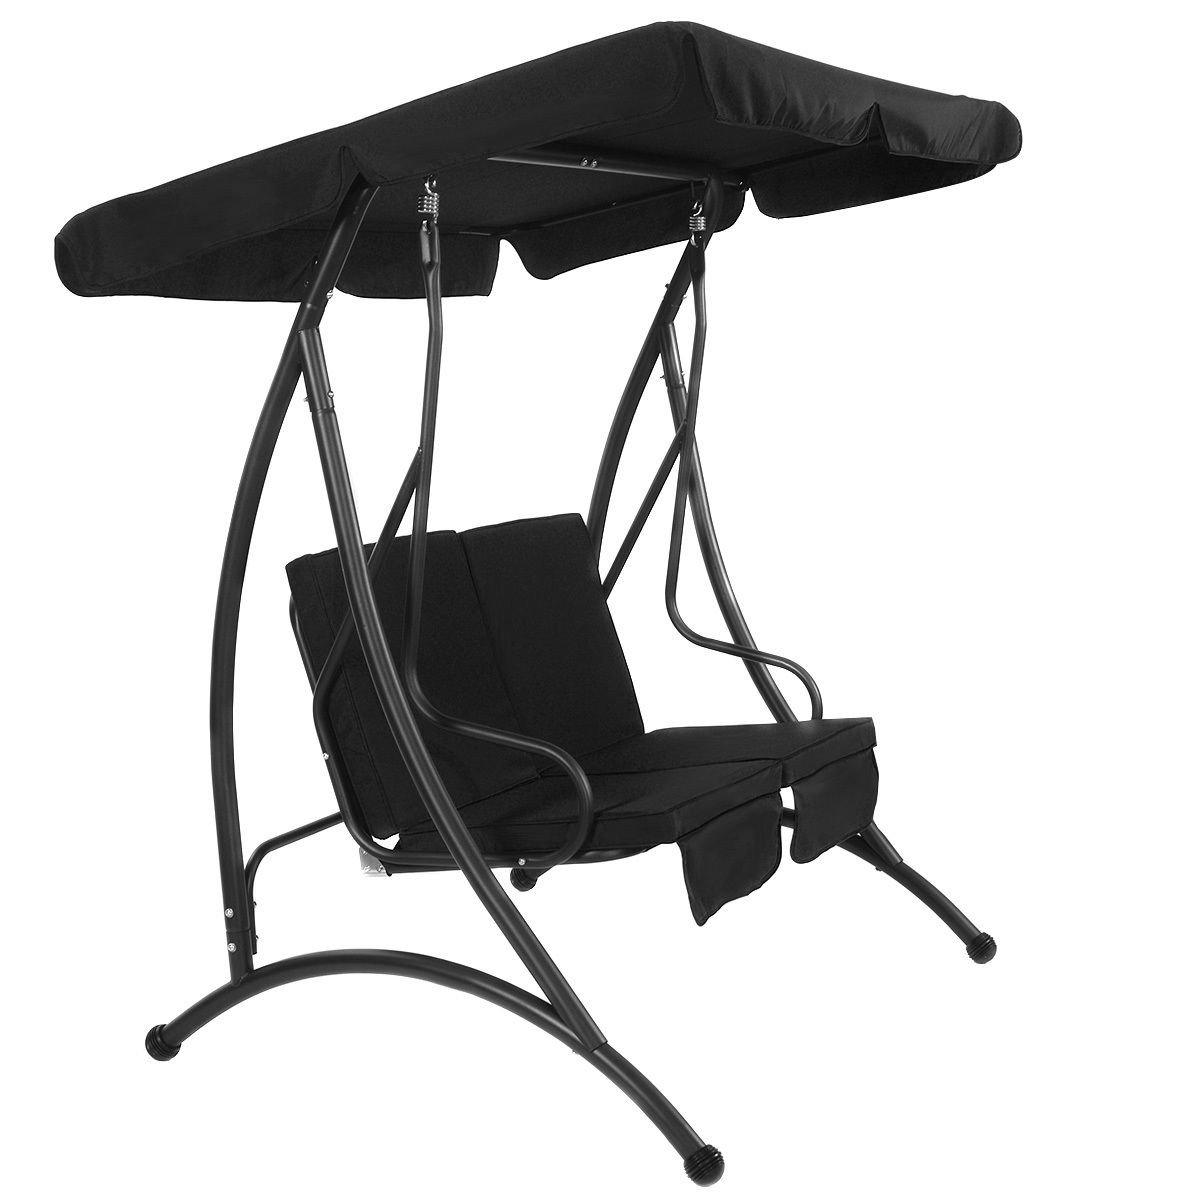 "Amazon : Fdinspiration Black 58"" Steel Frame 2 Seat Inside Most Current Black Outdoor Durable Steel Frame Patio Swing Glider Bench Chairs (View 3 of 30)"